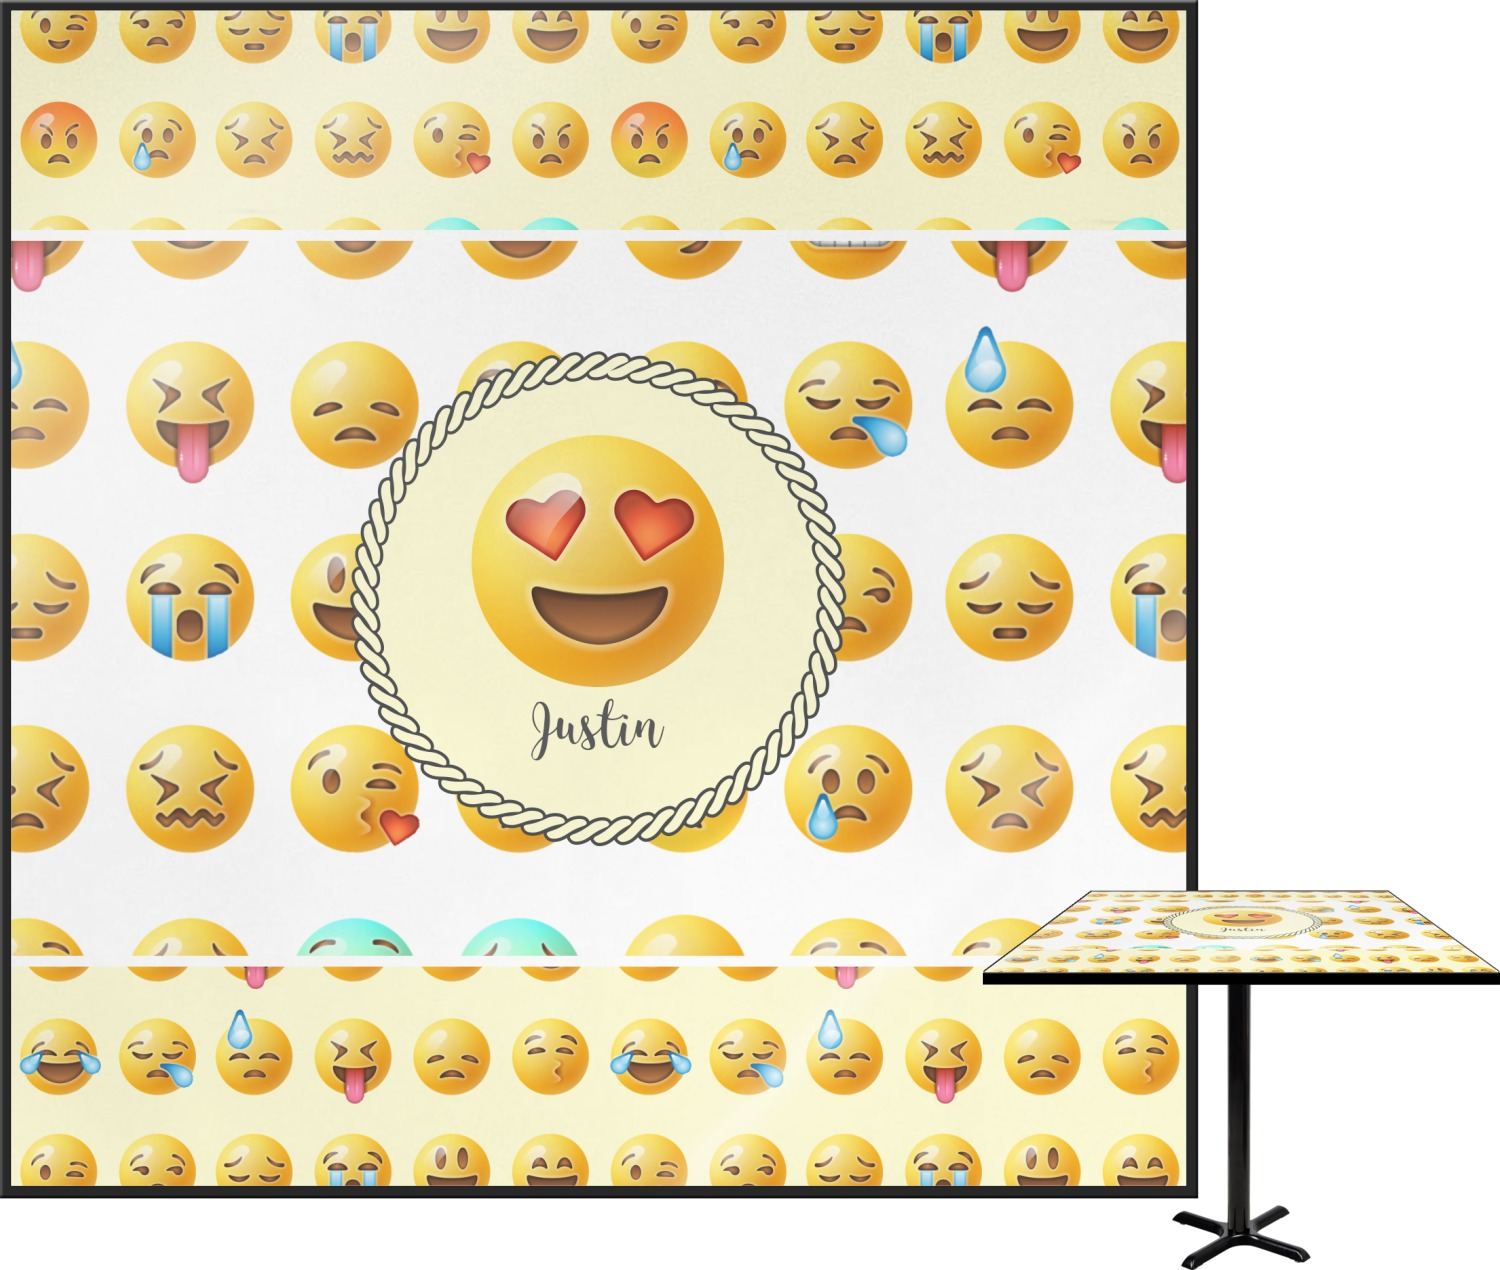 how to see emojis that are squares